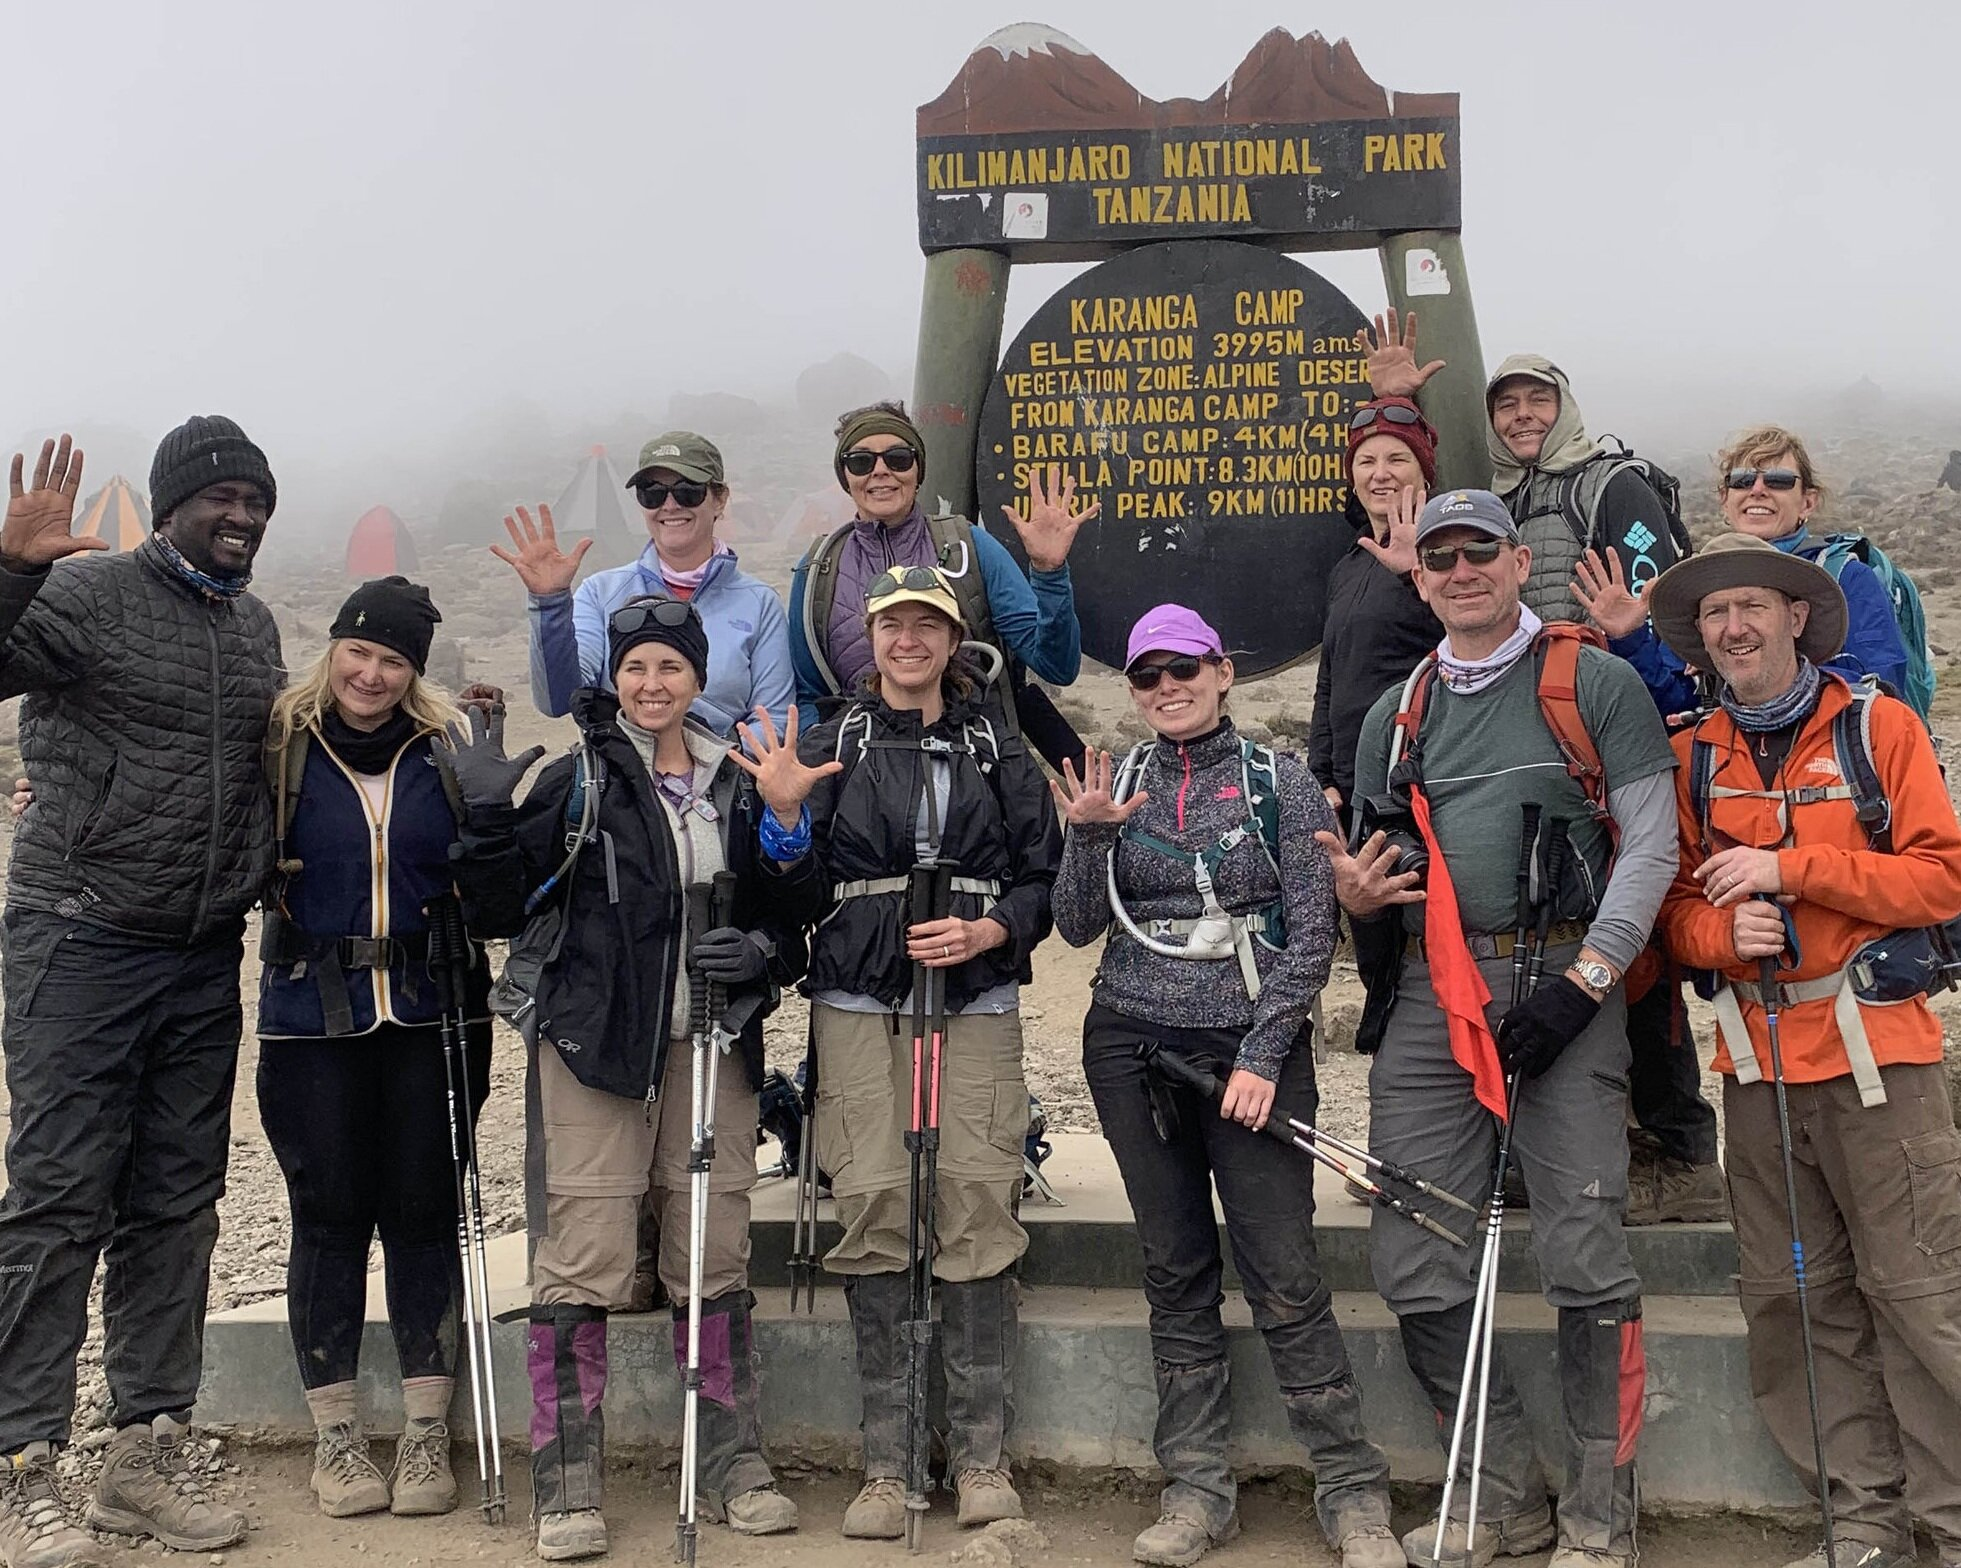 The Texarkana group above and in the clouds at the Karanga Camp after Day 5 of hiking where they racked the most difficult, steep part of the climb (aside from the final summit) called the Barranco Wall.